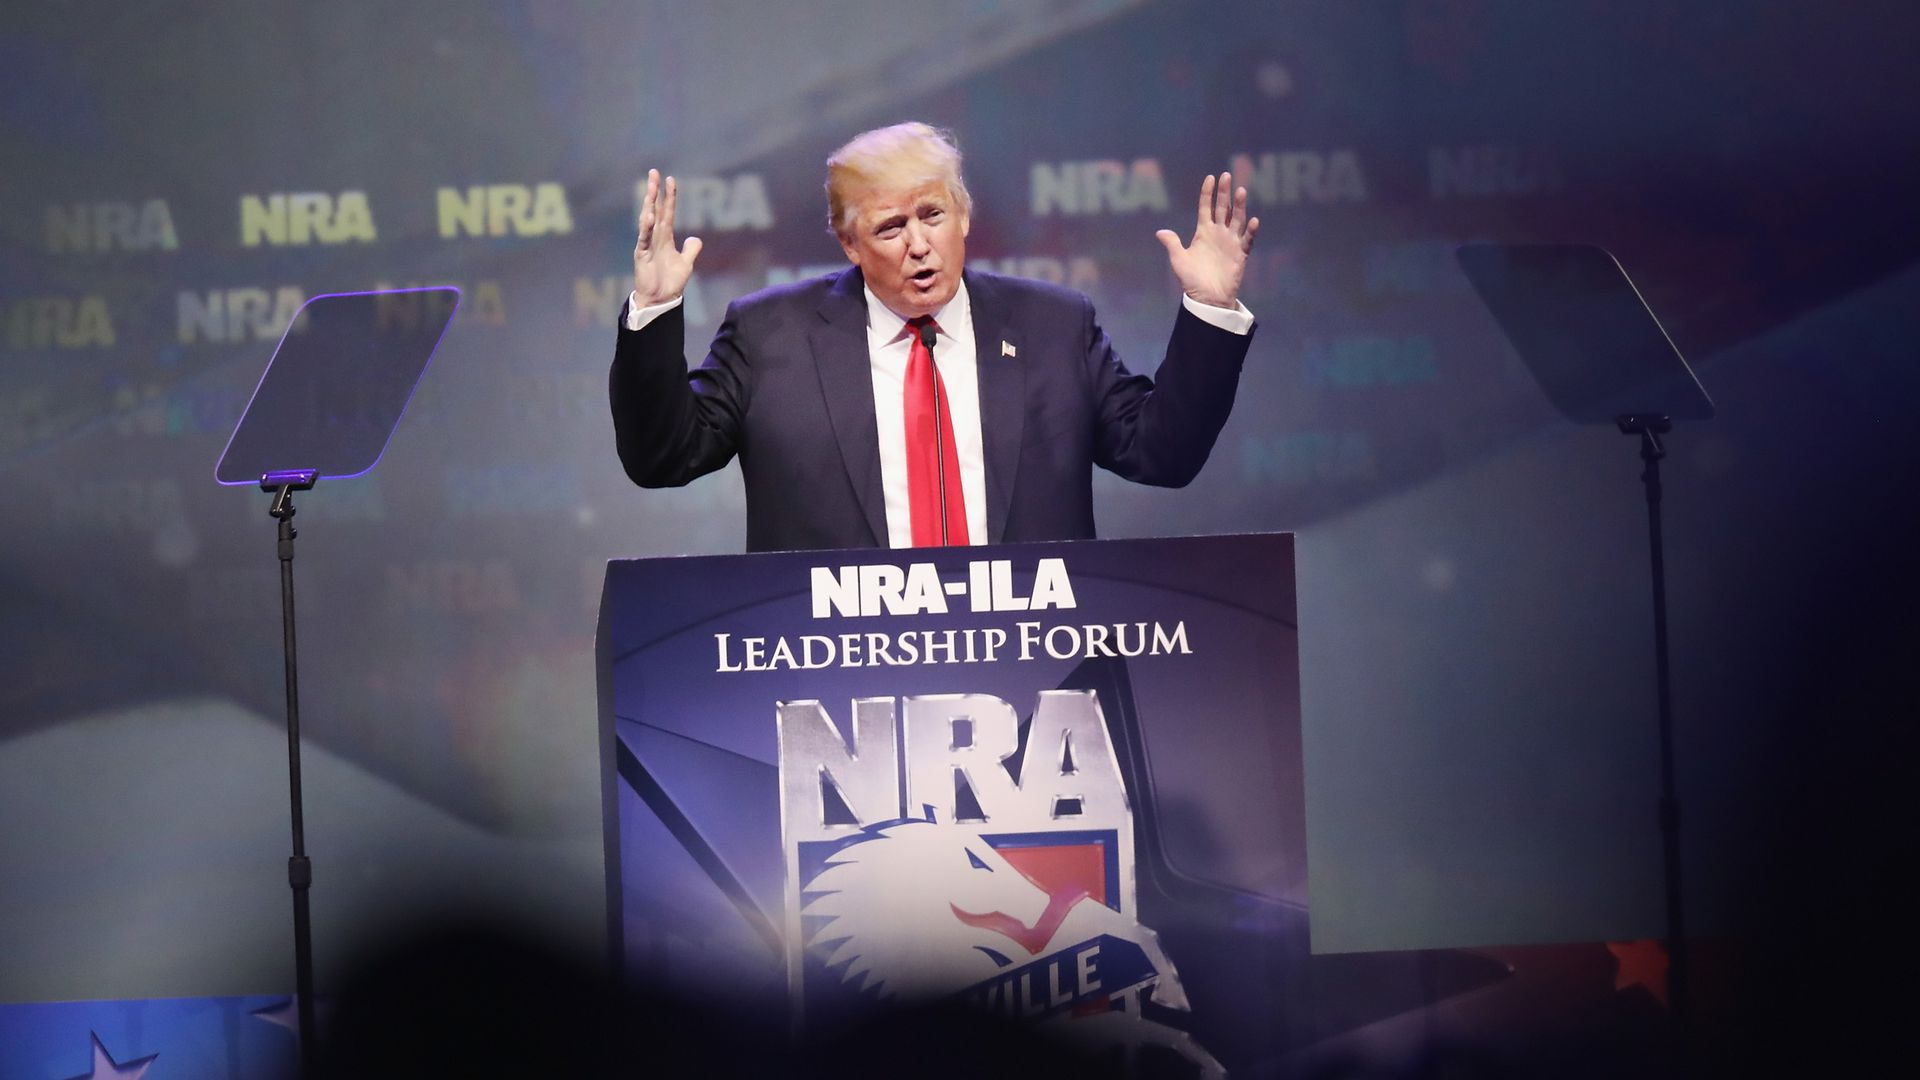 FBI probing NRA -Russia money connection